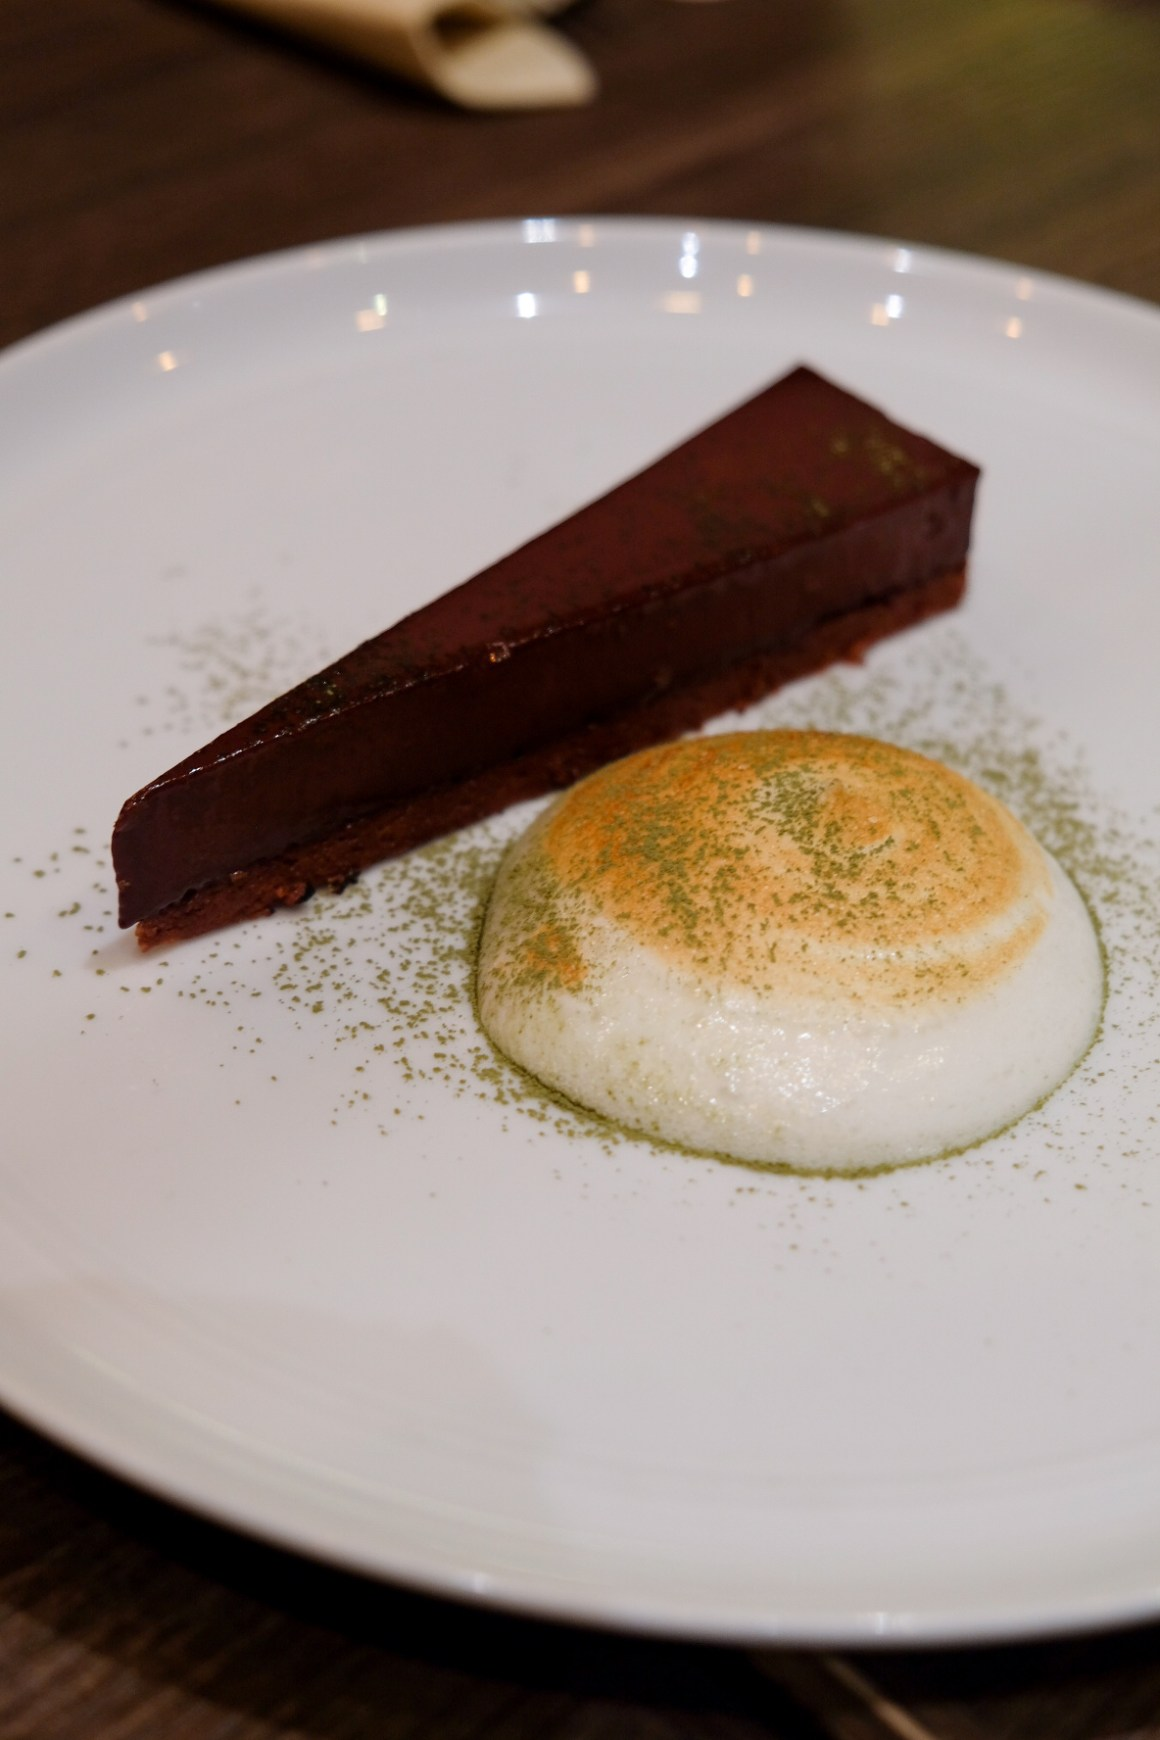 Delicious Italian Food At Amo Restaurant - Chocolate Tart with Green Tea and Yuzu Meringue ($12)